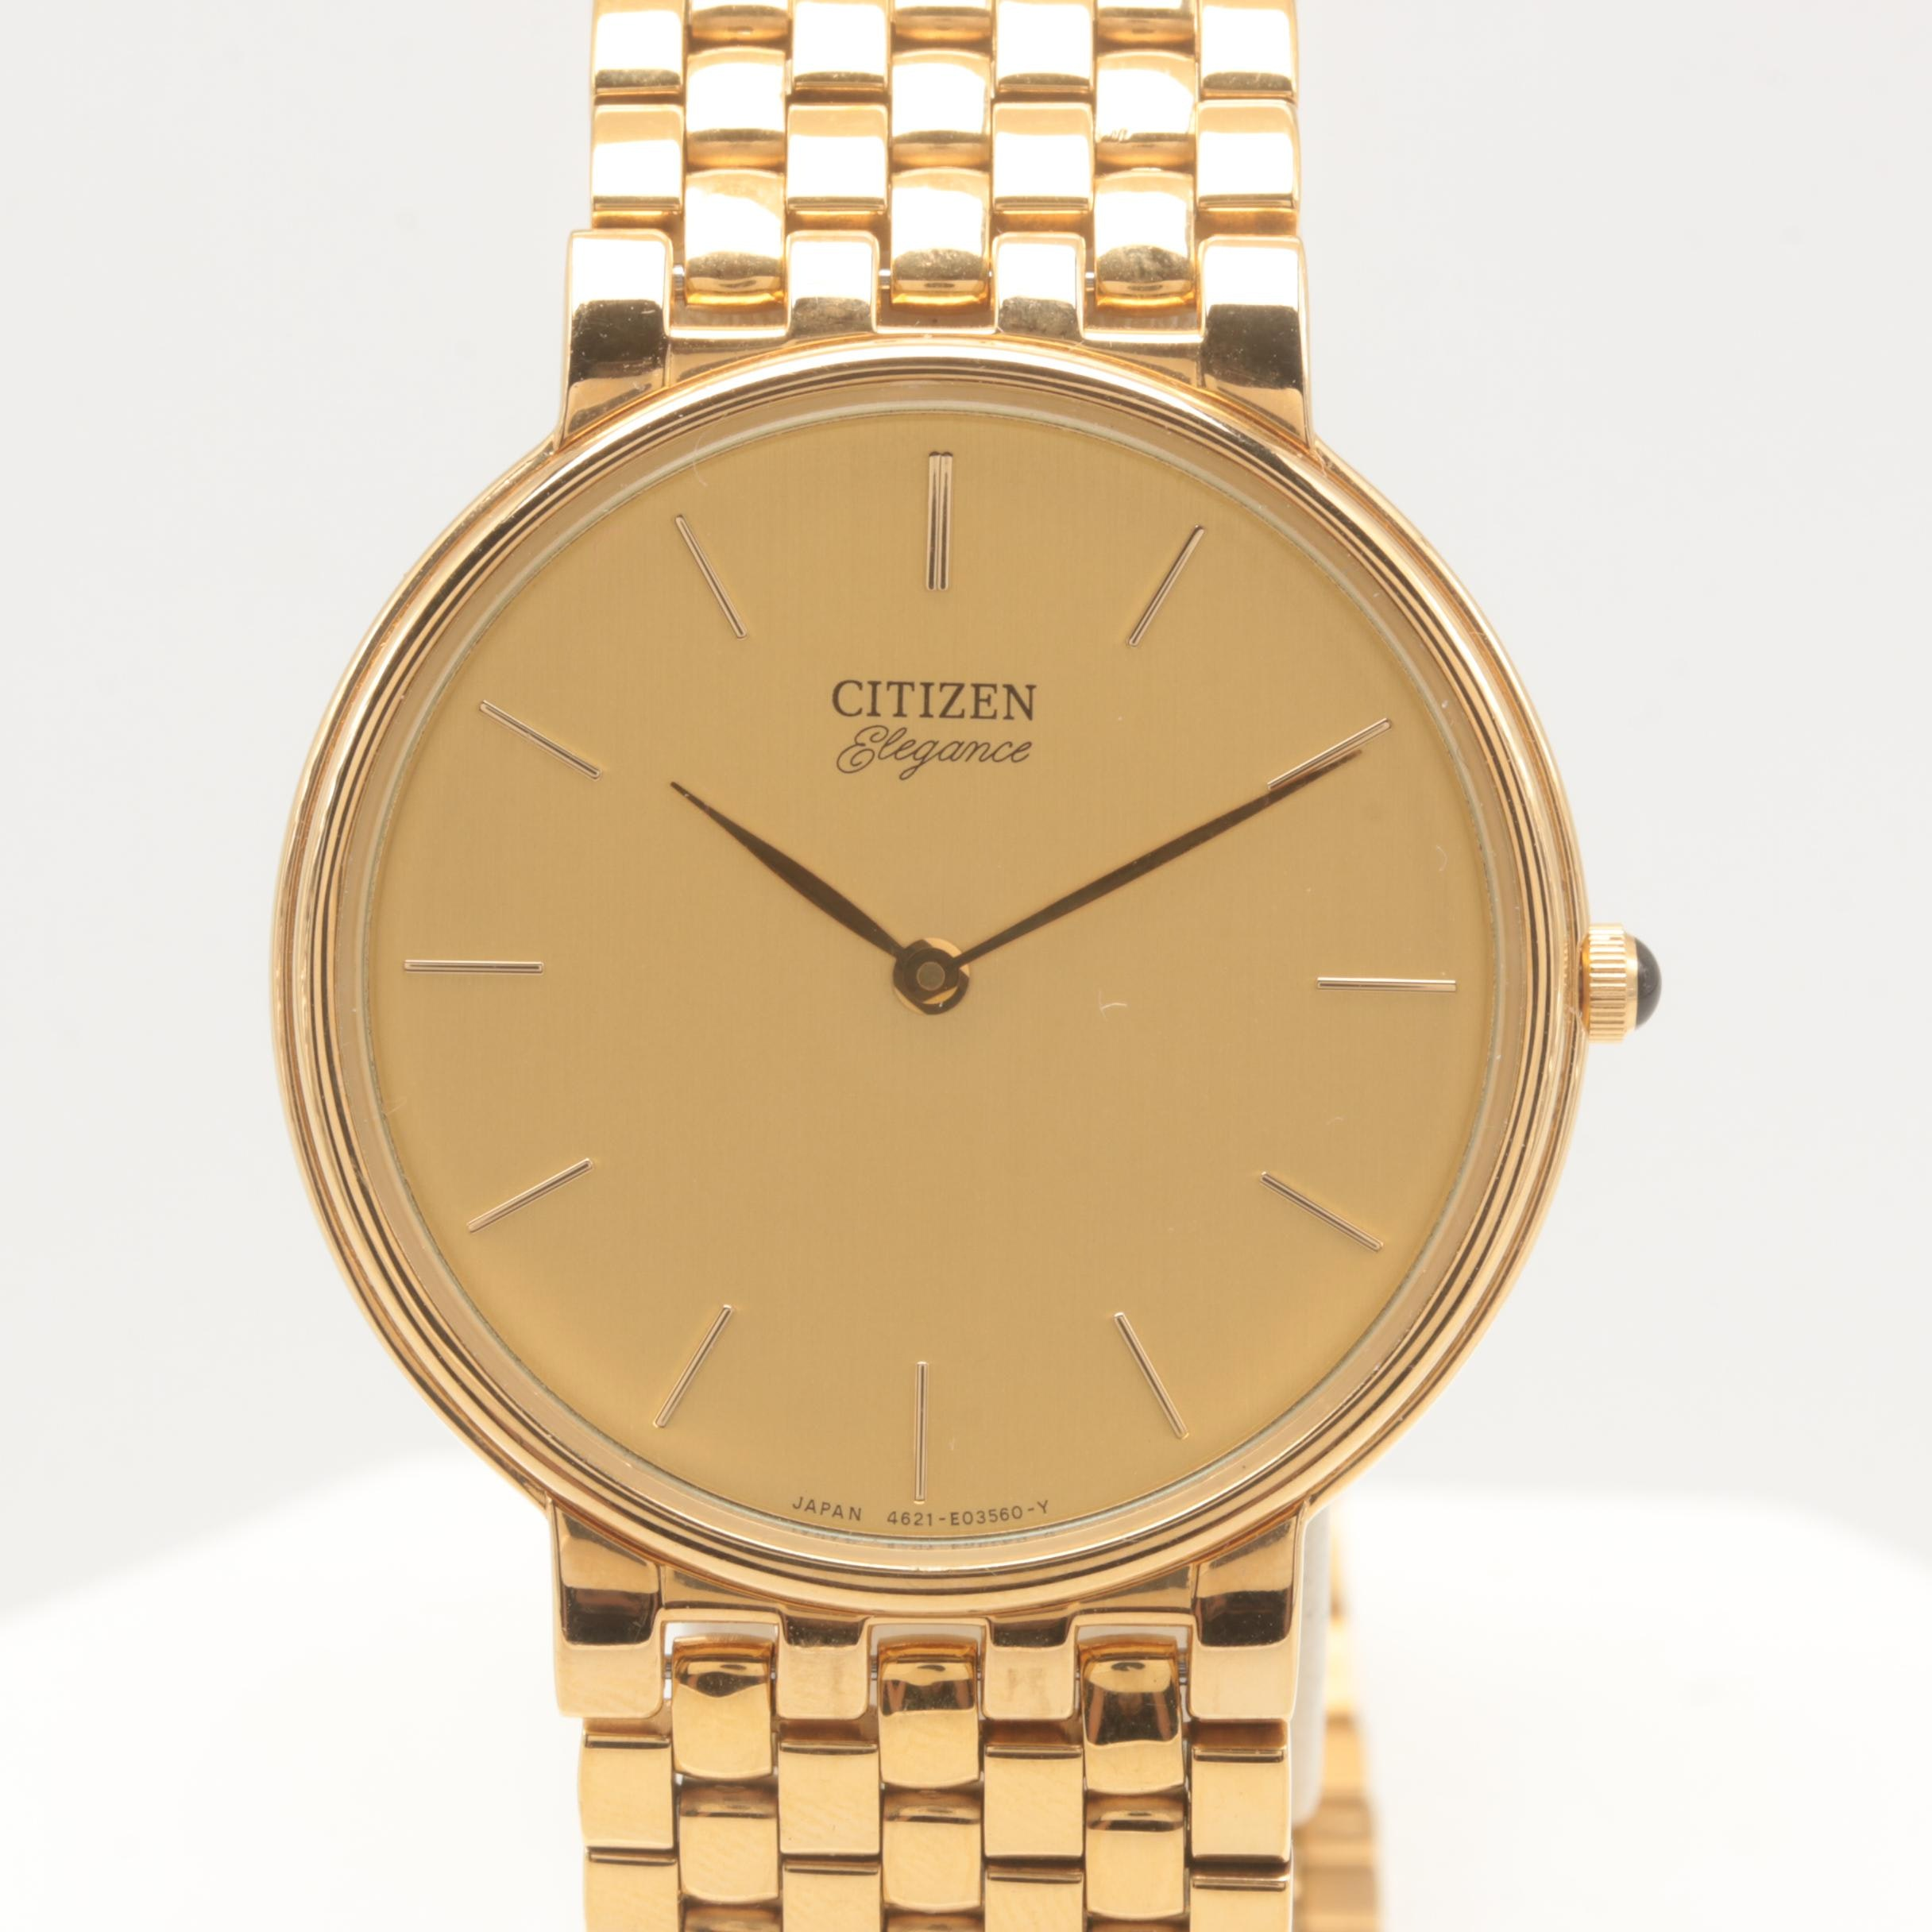 Citizen Gold Tone Stainless Steel Wristwatch with Box